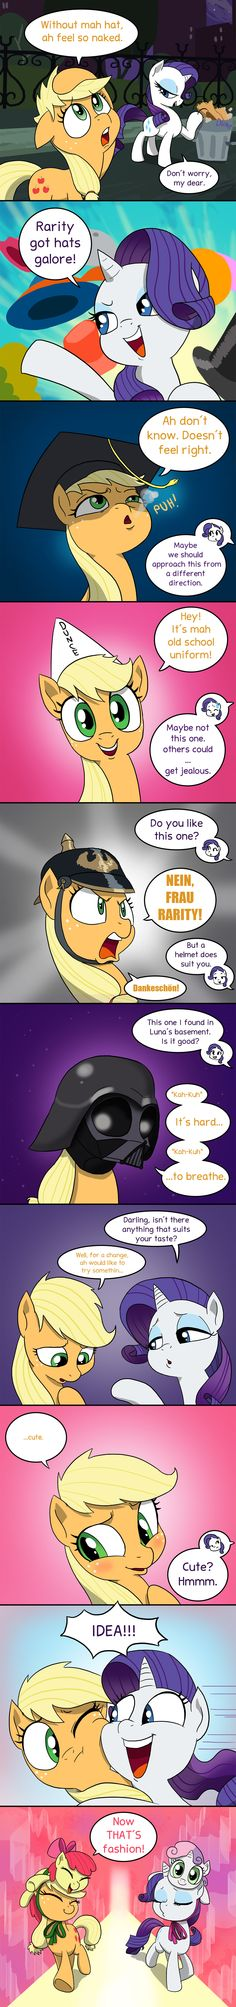 #993033 - adorabloom, apple bloom, applejack, applejack's damaged hat, applejack's hat's death, artist:doublewbrothers, comic, cute, darth vader, dialogue, diasweetes, dunce cap, german, hat, jackabetes, made in manehattan, mask, mortar board, pickelhaube, pony hat, raribetes, rarity, safe, season 5 comic marathon, speech bubble, spoiler:s05e16, star wars, sweetie belle, sweetiehat - Derpibooru - My Little Pony: Friendship is Magic Imageboard